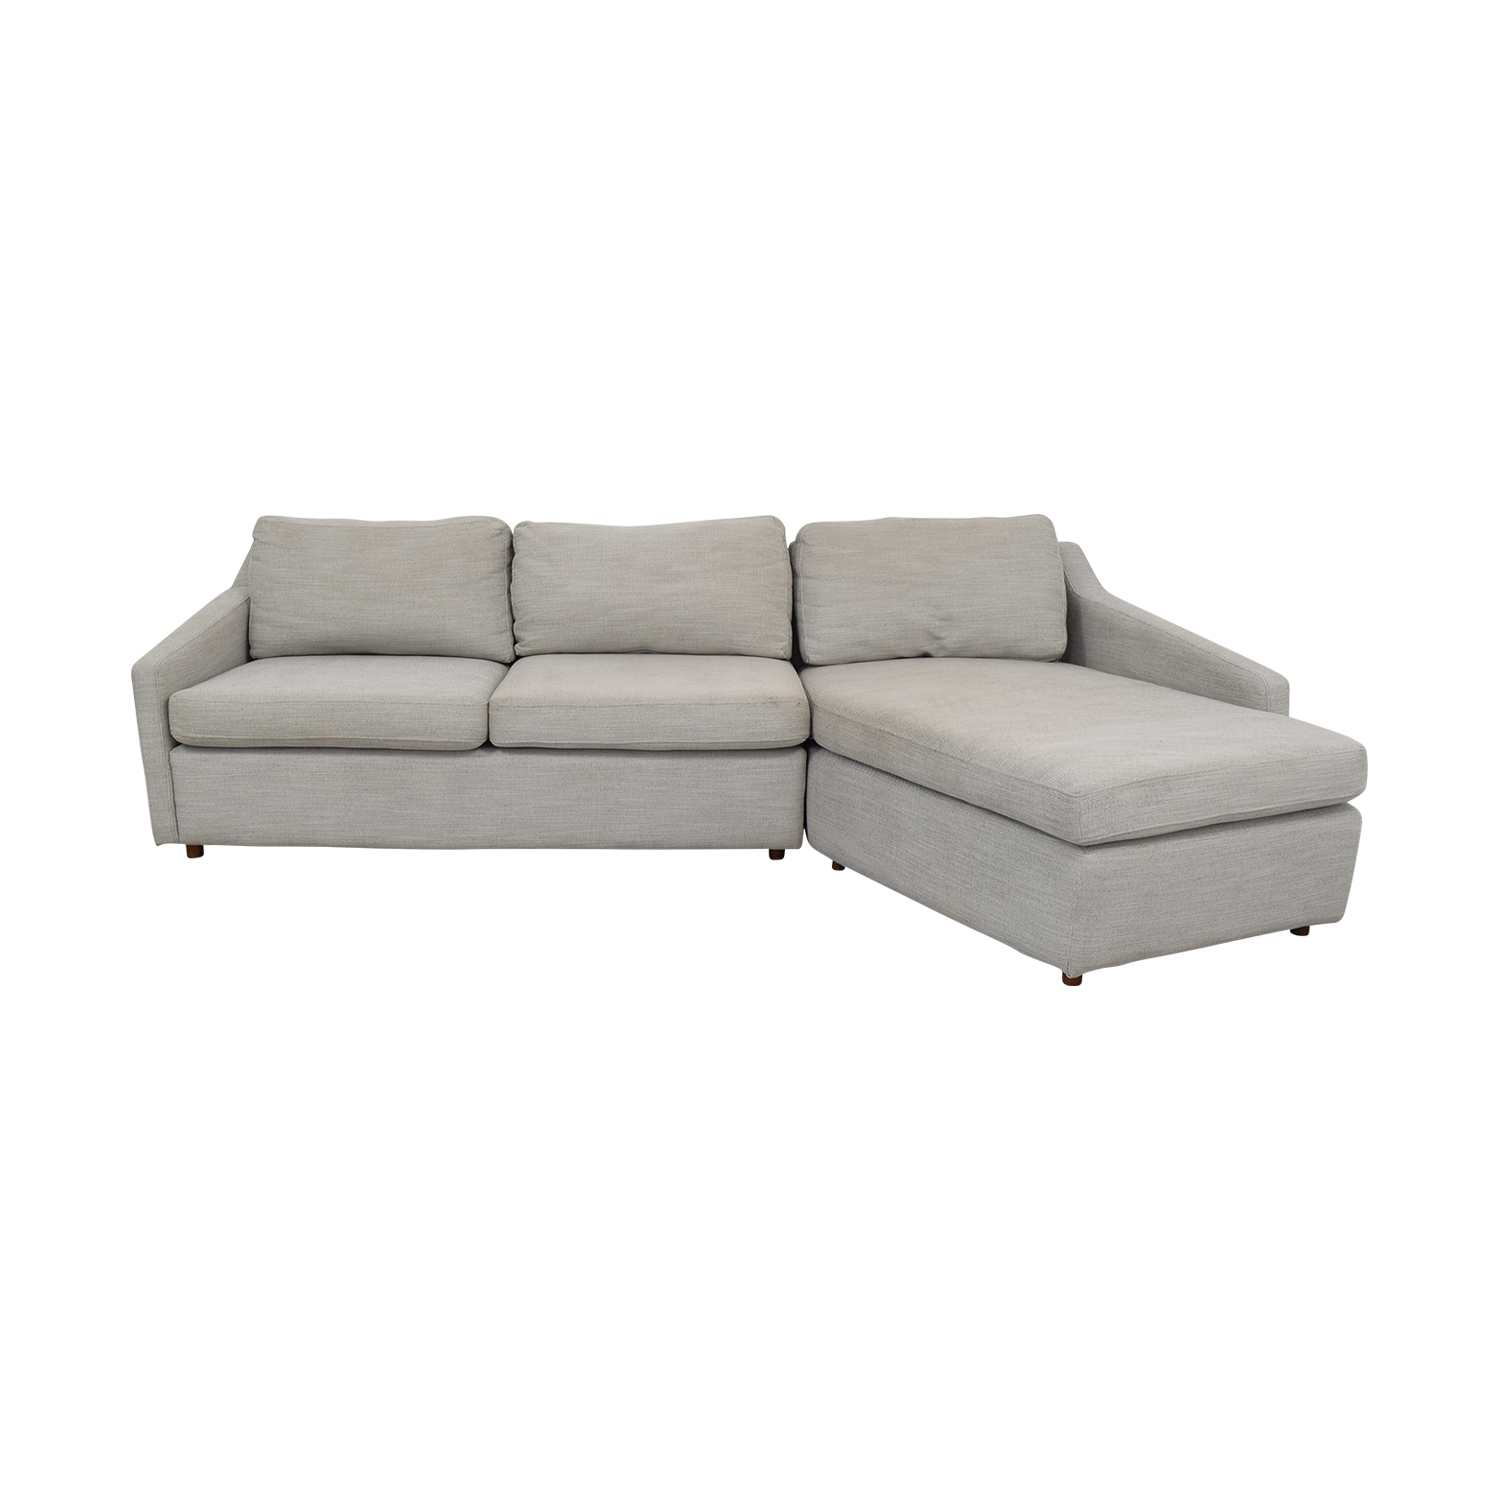 West Elm West Elm Trapez Chaise Sectional Sofa on sale